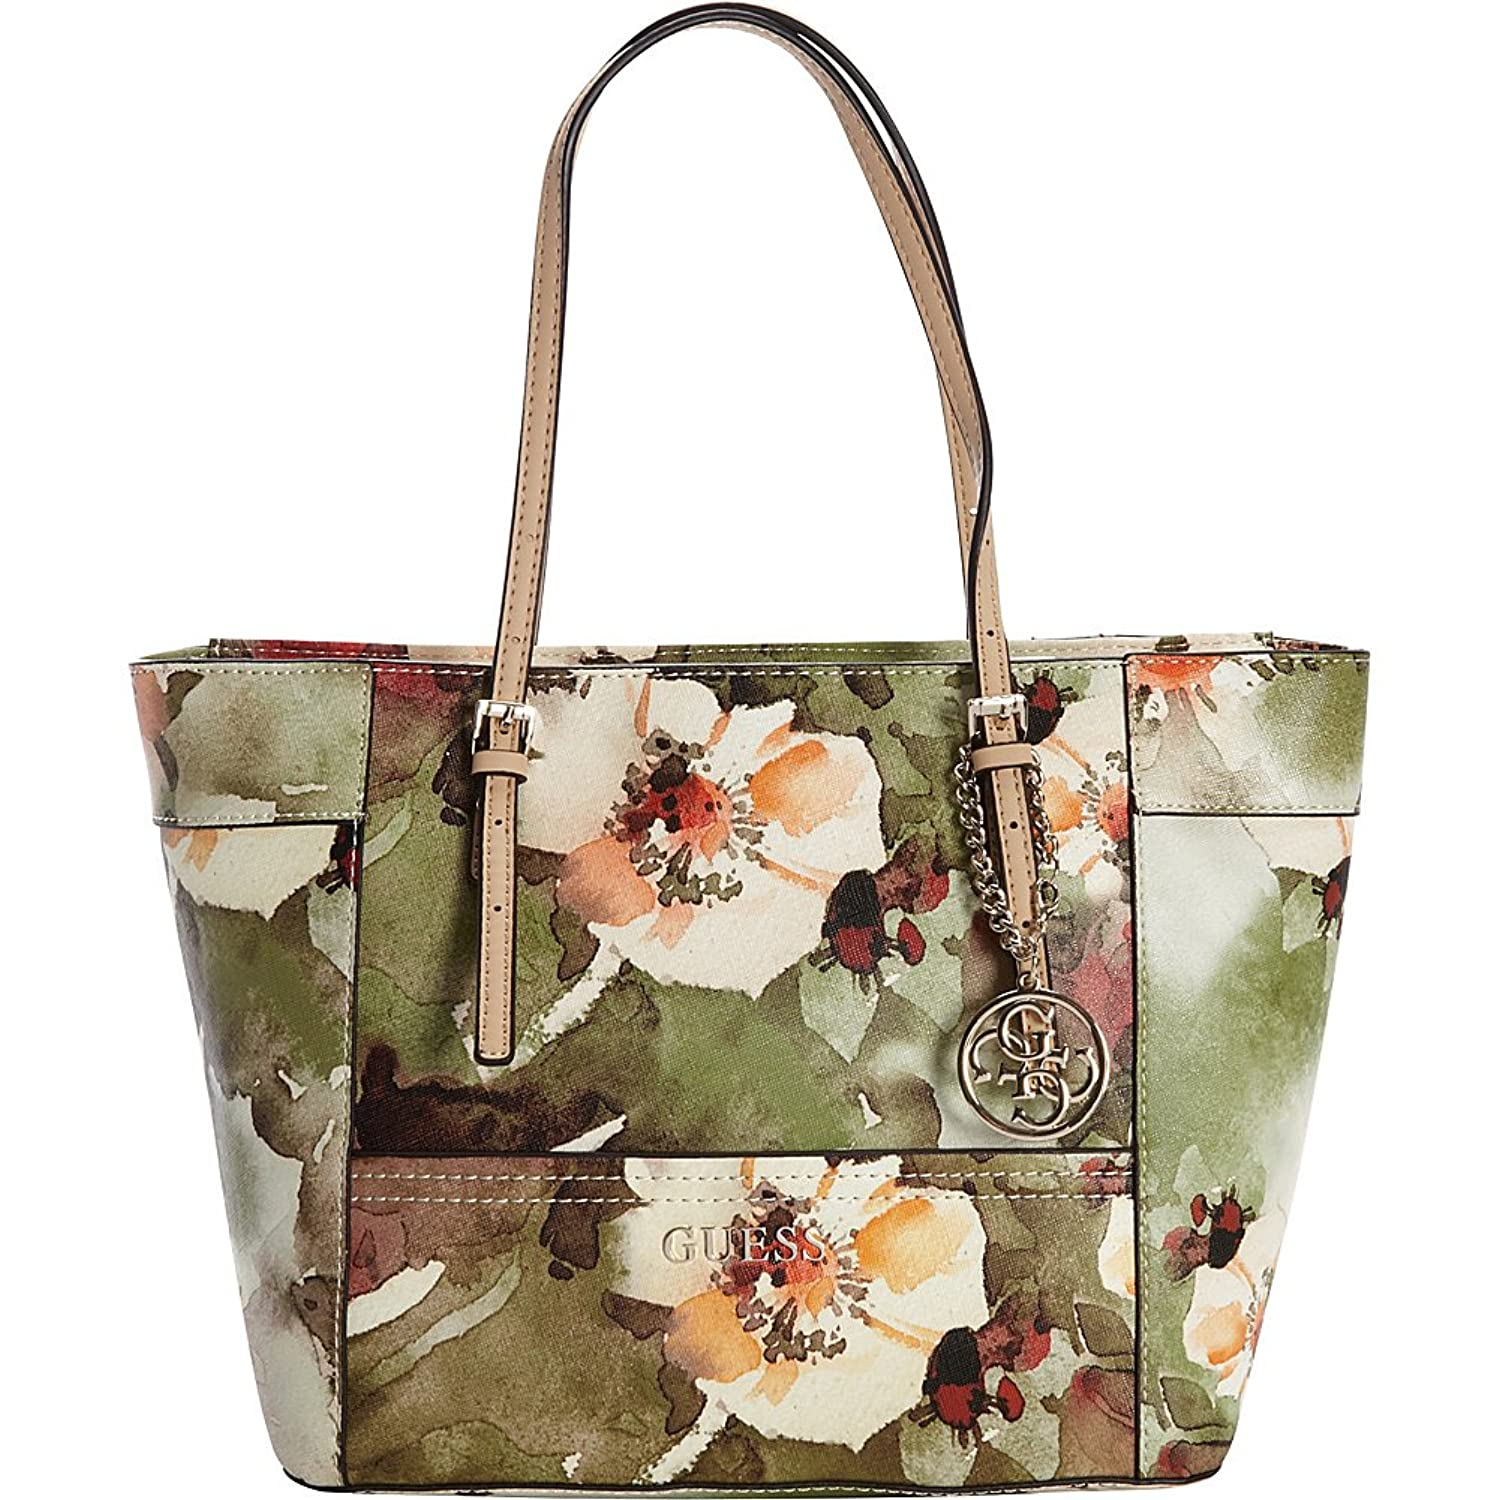 Guess Delaney Floral Bag